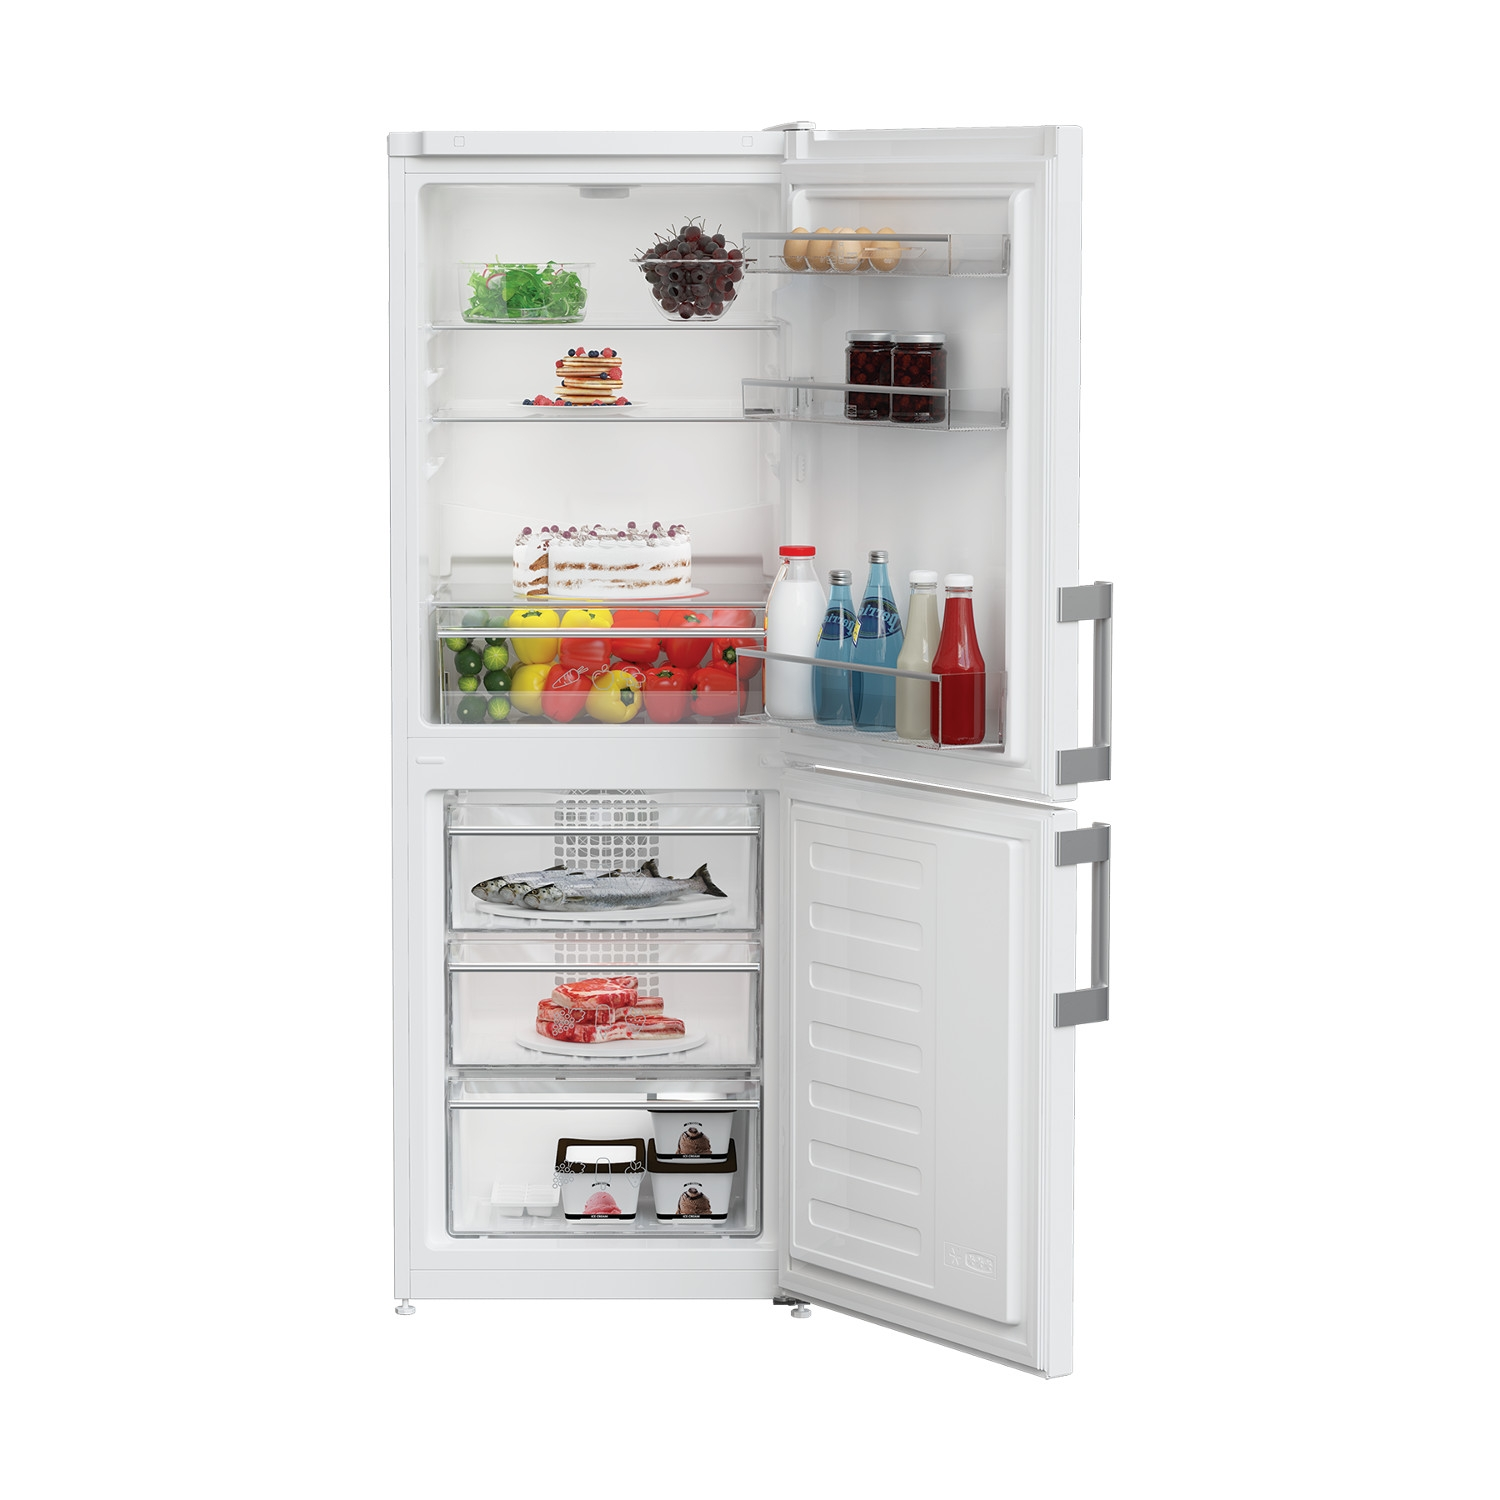 Blomberg KGM4530 55cm Frost Free Fridge Freezer - White - A+ Rated